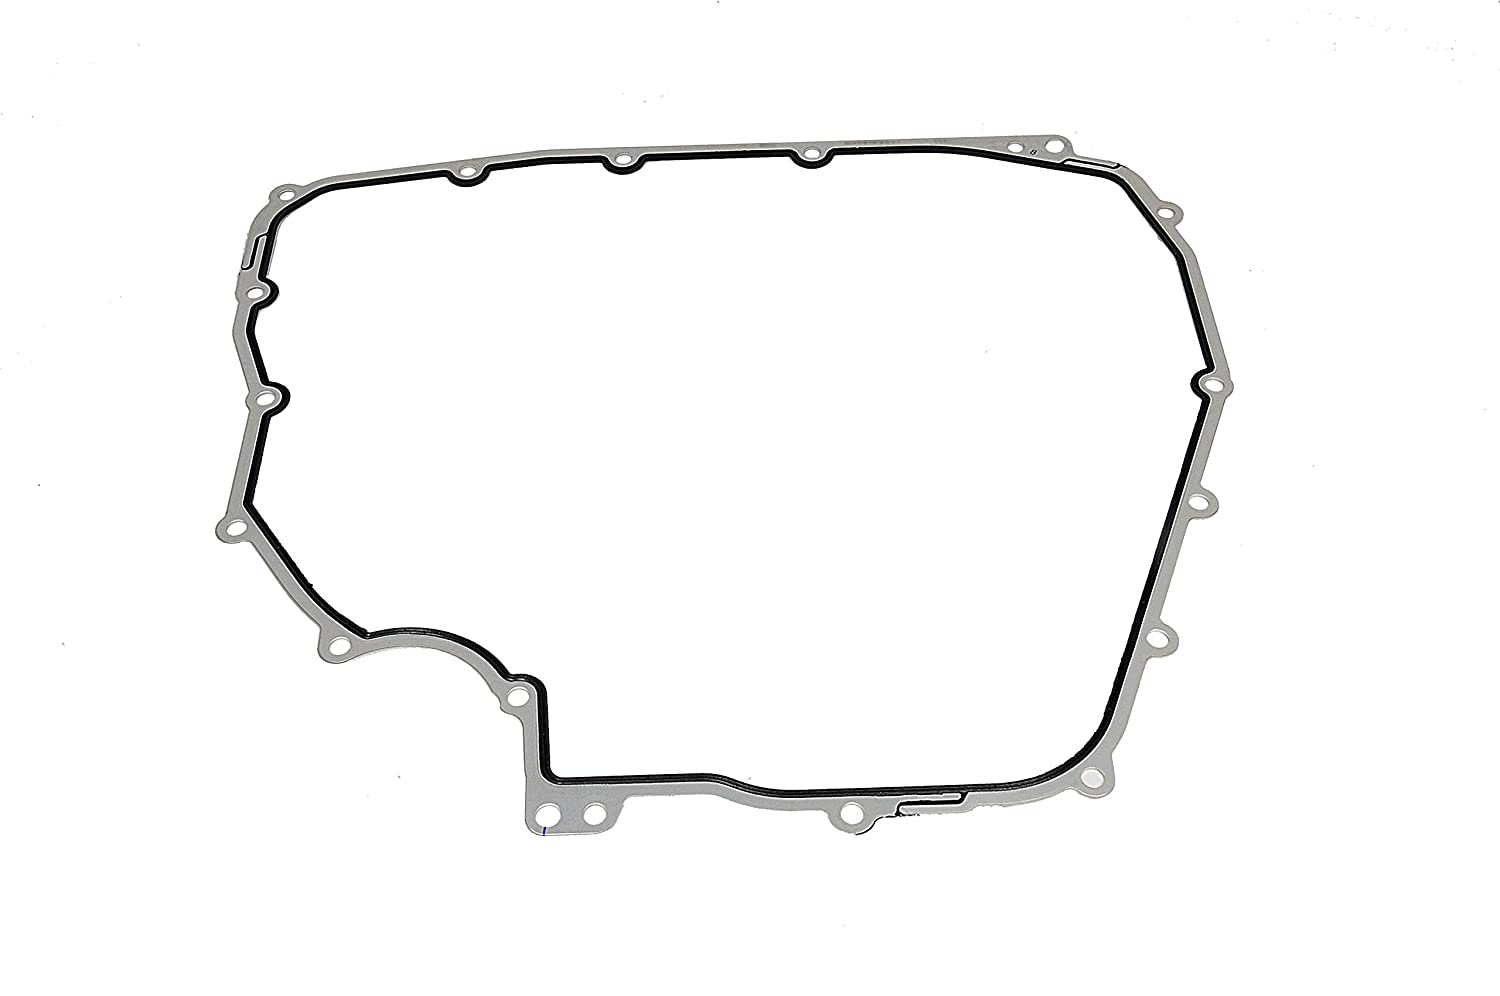 ACDelco 24237725 GM Original Equipment Automatic Transmission Torque Converter Housing Outer Gasket